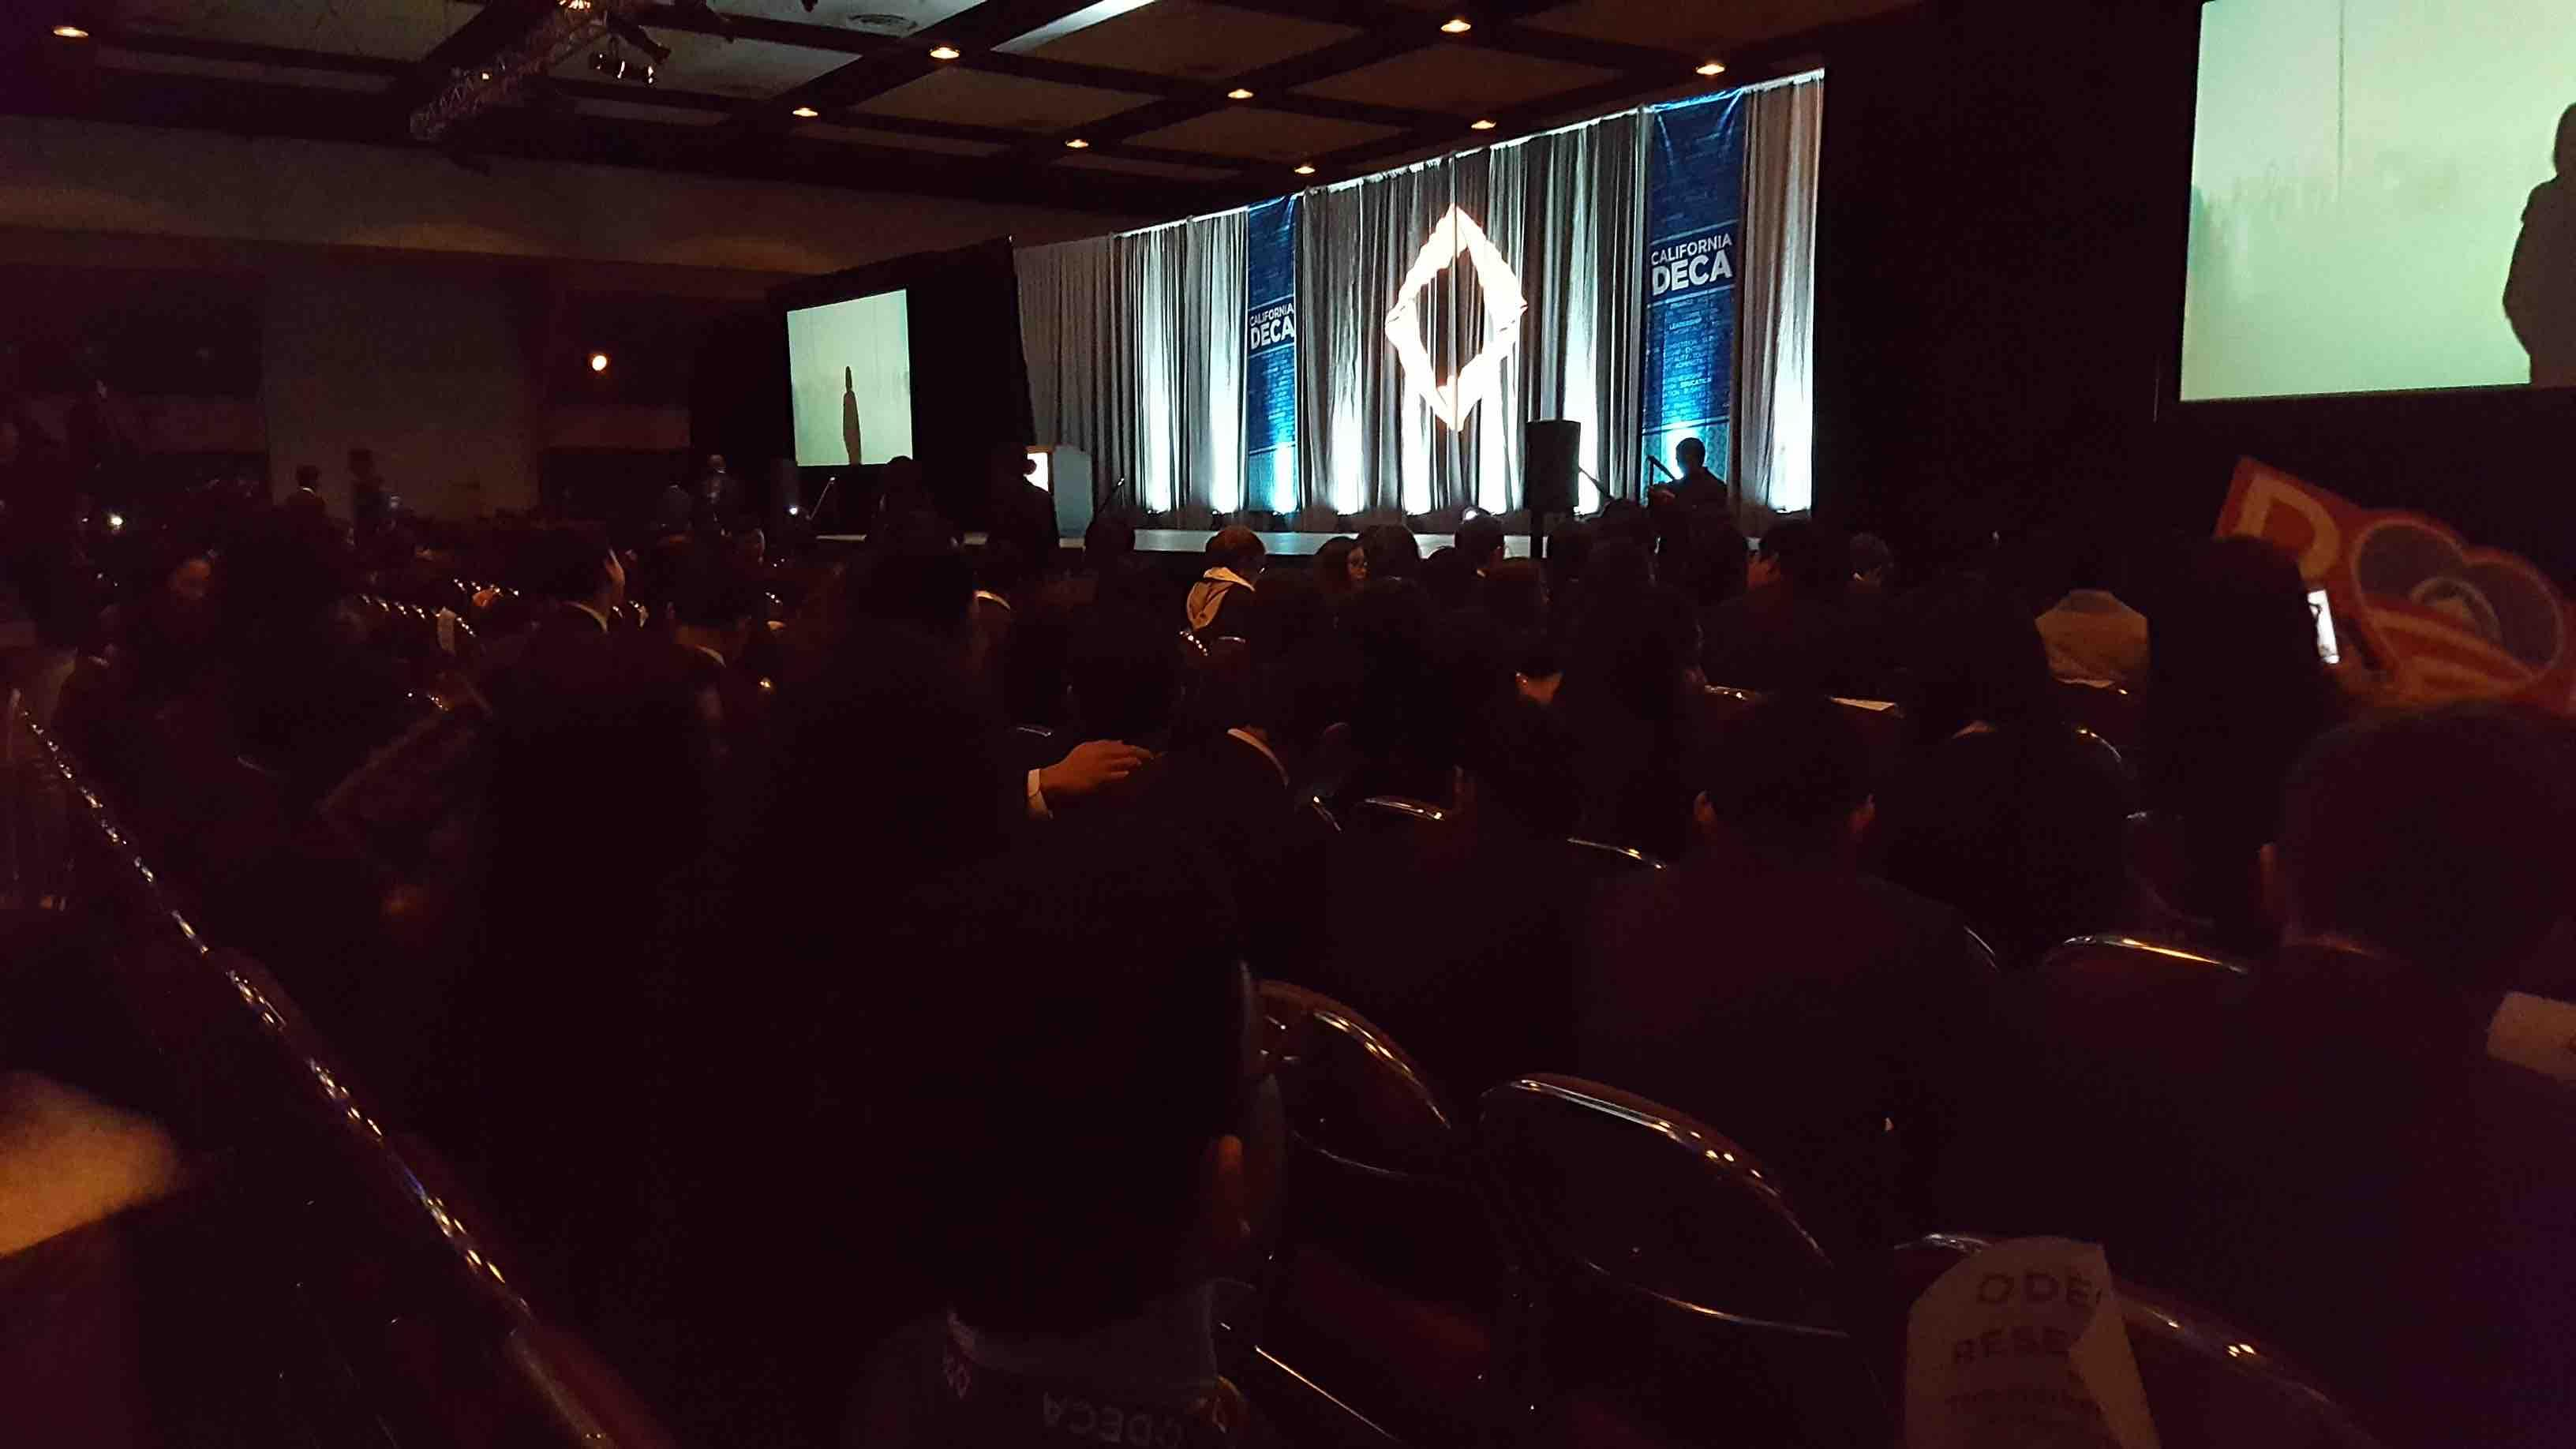 Students sit in anticipation for the awards ceremony at DECA SCDC to begin. The event took place from Thursday, March 2 to Sunday, March 5 in the Santa Clara Marriott.